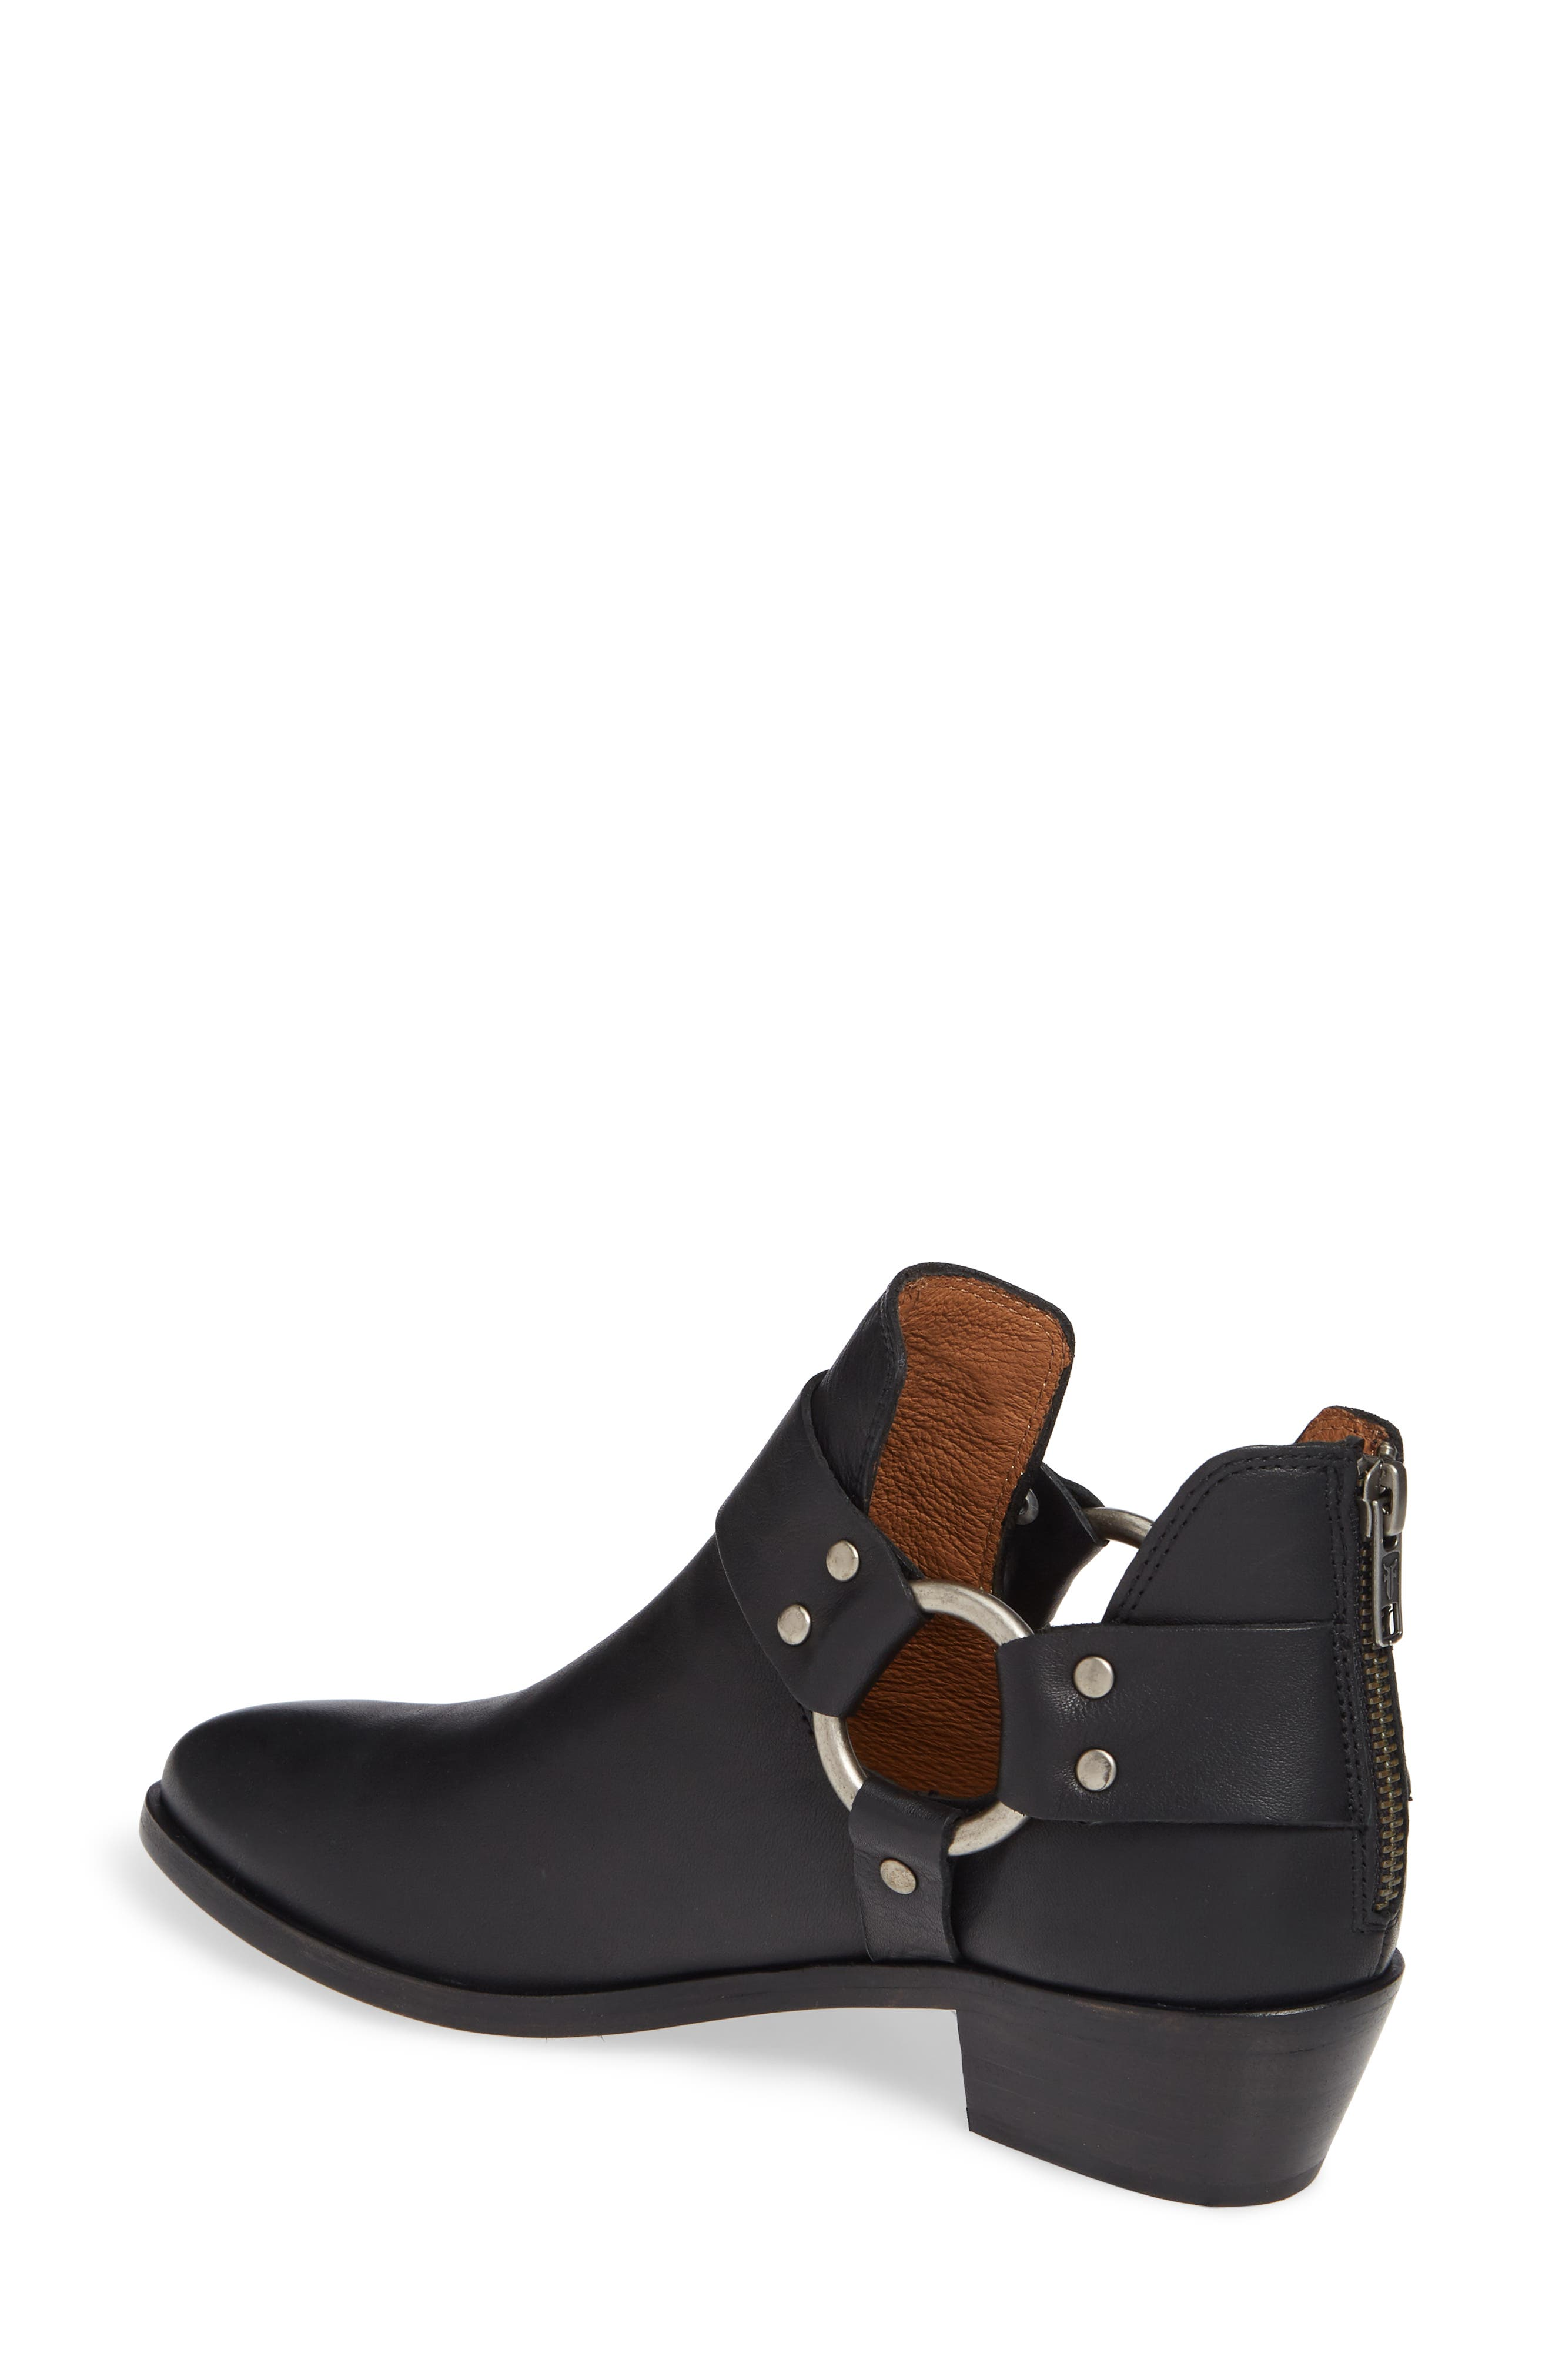 FRYE, Ray Low Harness Bootie, Alternate thumbnail 2, color, BLACK